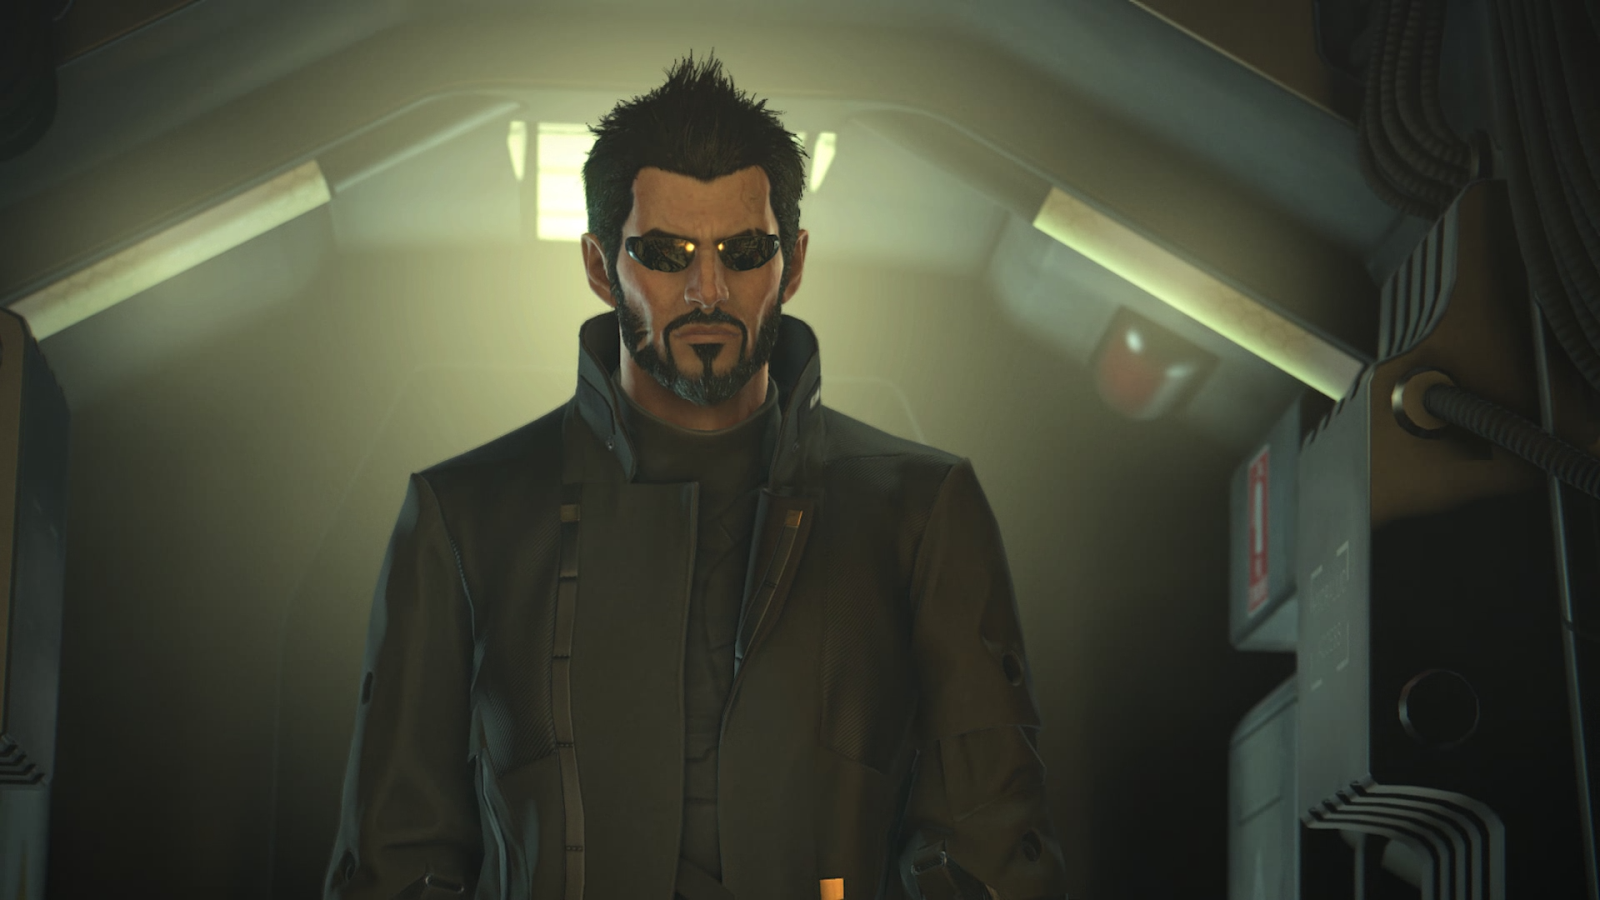 SQUARE ENIX - Games - Deus Ex: Mankind Divided